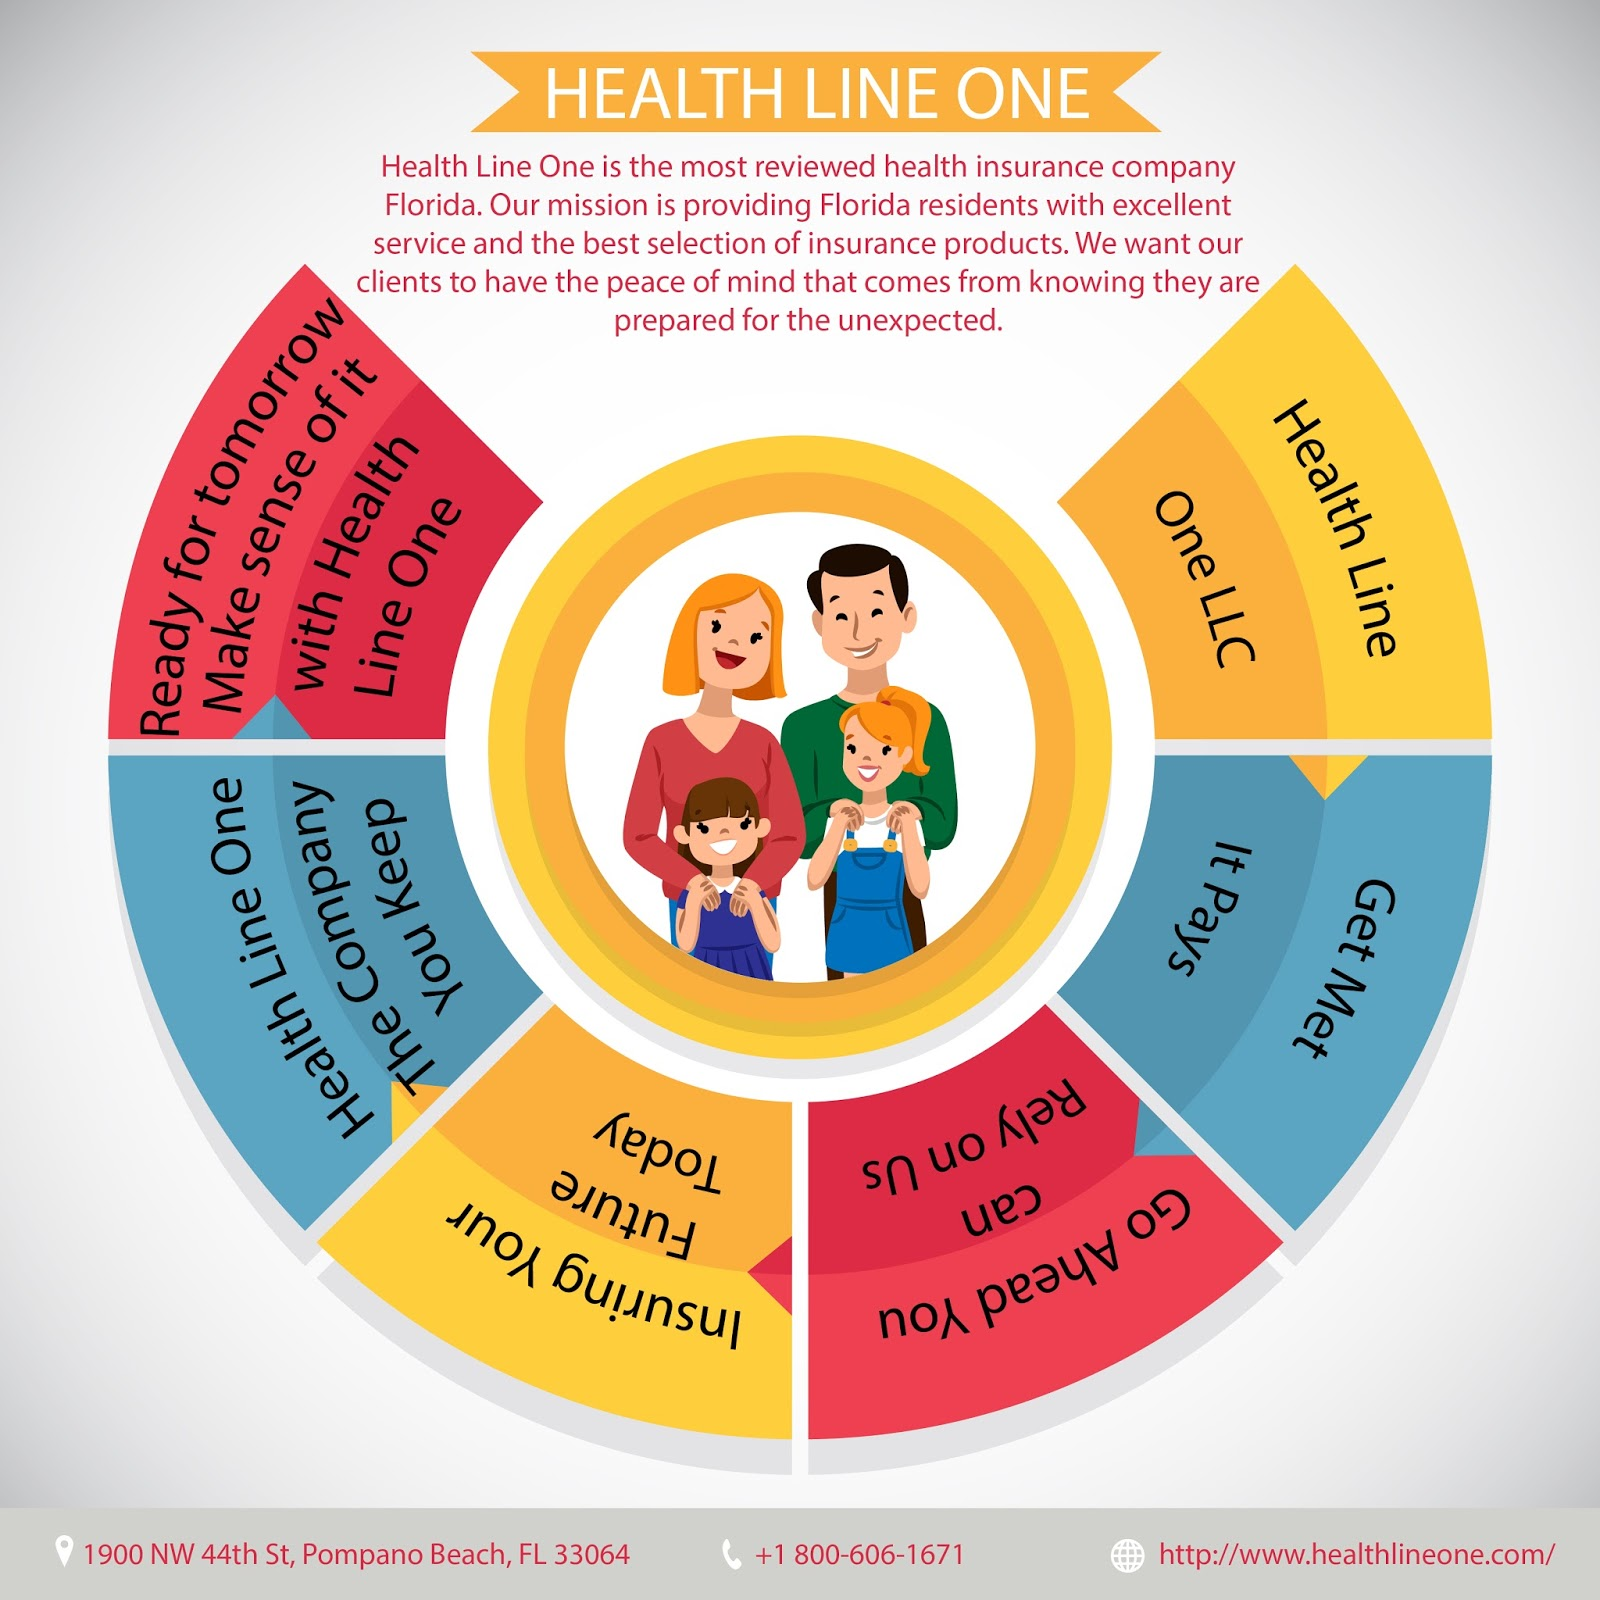 life insurance in florida health line one health line one llcthis type of random events can really happen to anyone of us it is wise to count with such situations life insurance does not have to be very expensive